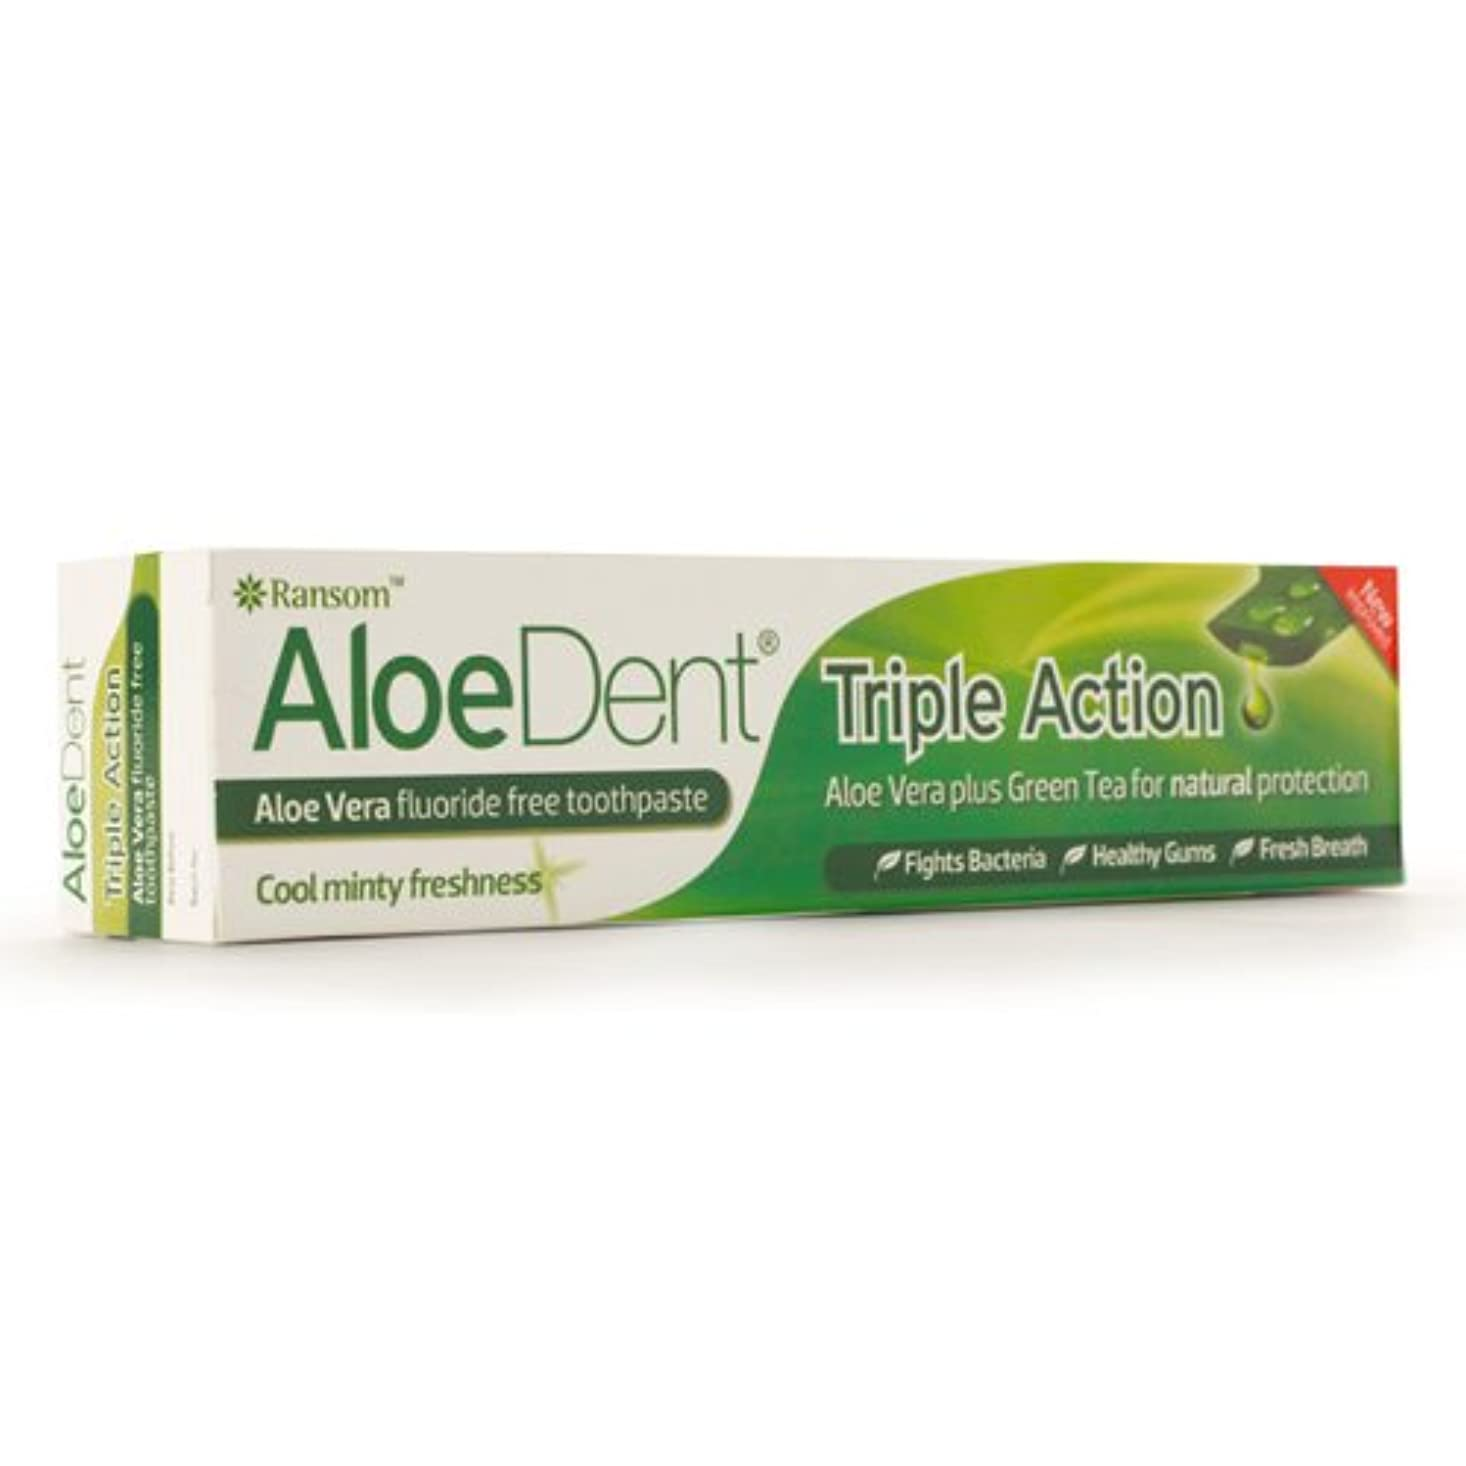 ギャラントリー性交告発AloeDent Triple Action Aloe Vera Fluoride Free Toothpaste 100ml